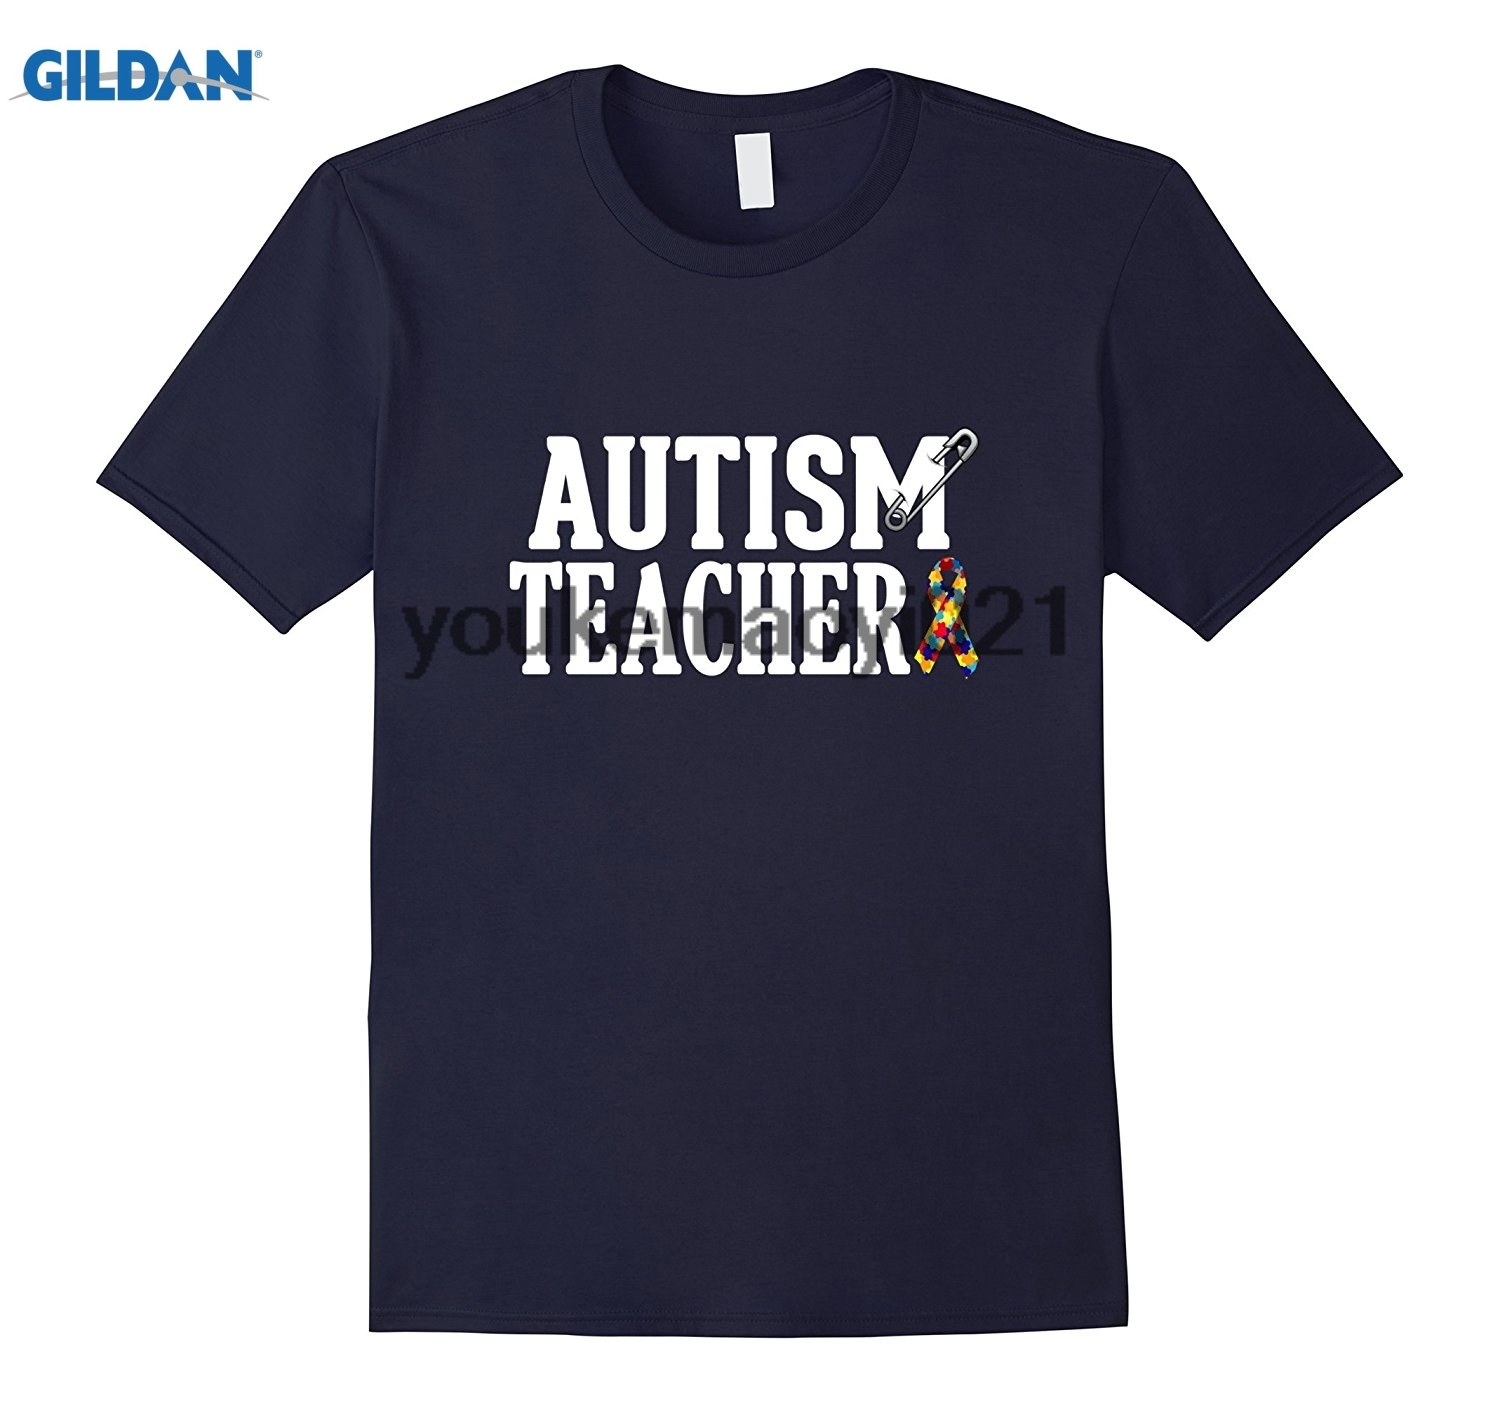 GILDAN Autism Teacher Safety Pin Awareness Shirt